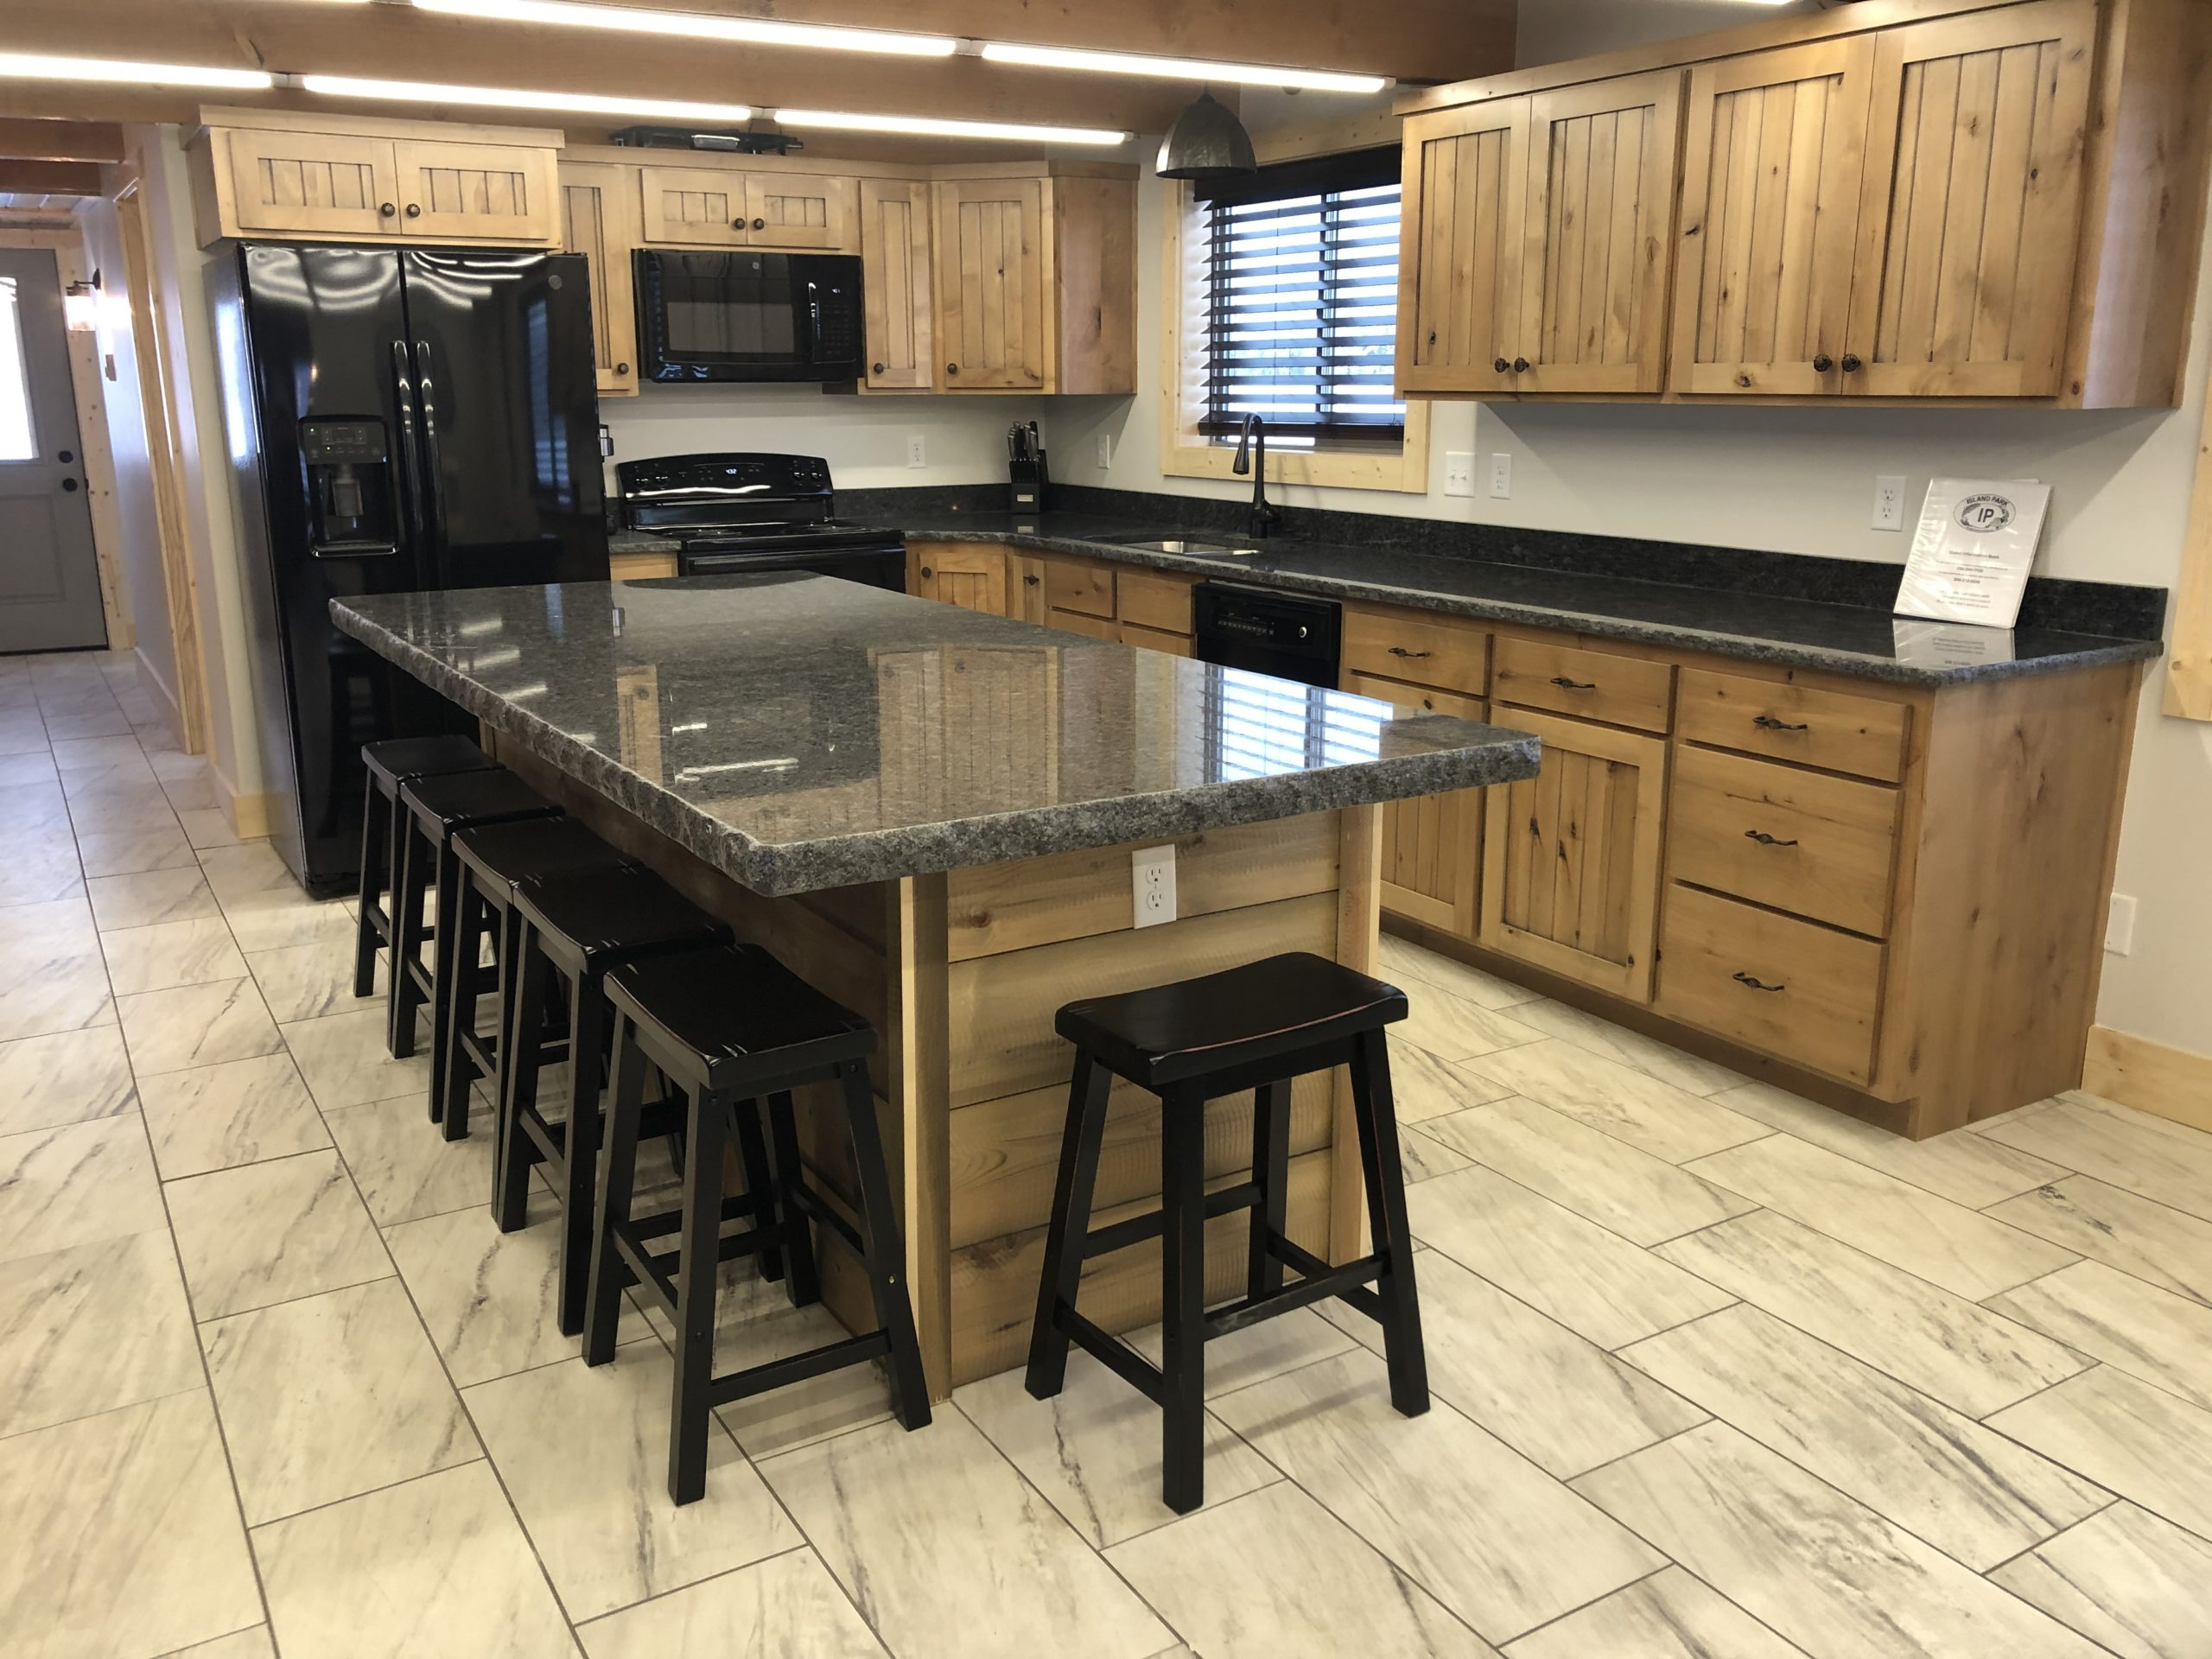 Fully equipped kitchen to enjoy meals with family and friends